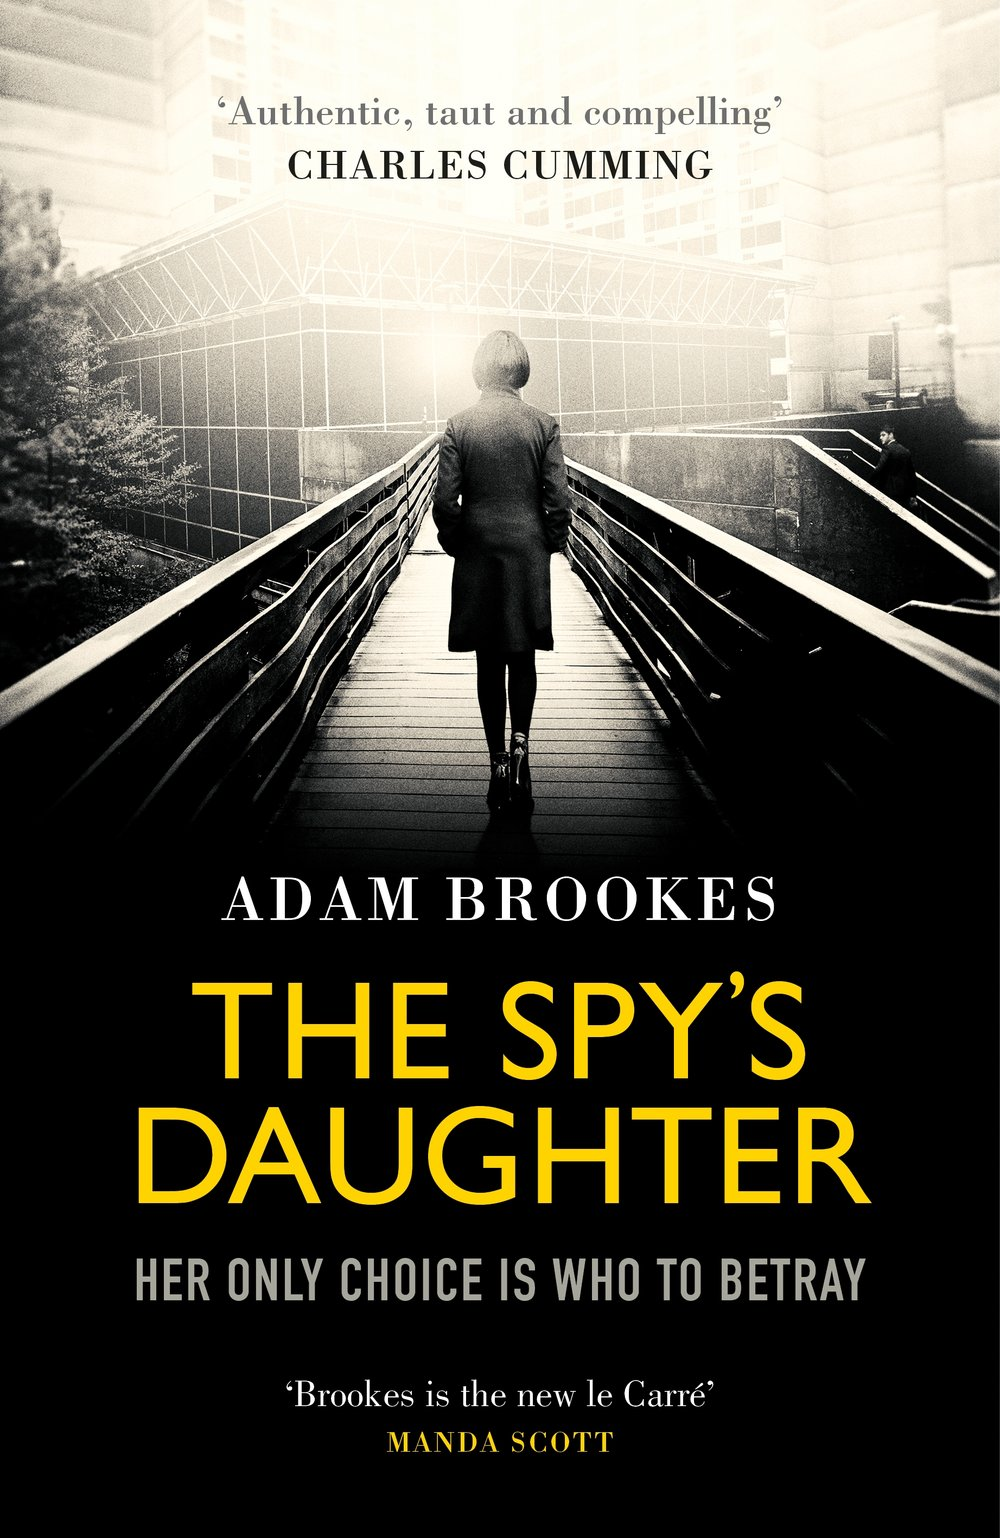 The Spy's Daughter book cover. Author: Adam Brookes